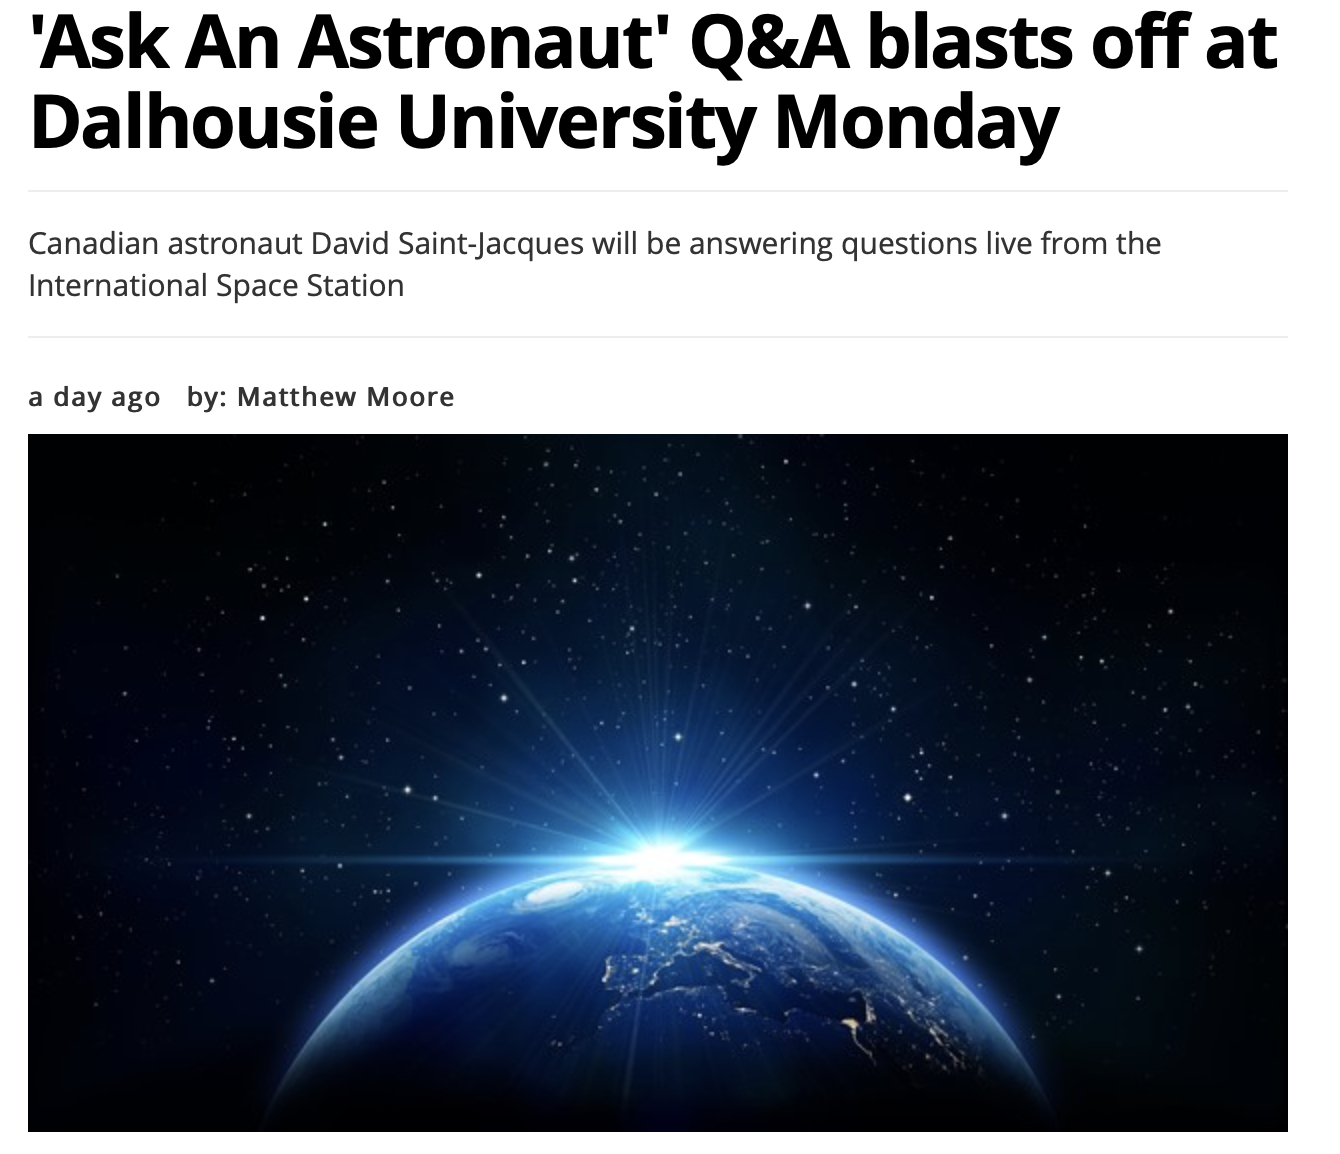 'Ask An Astronaut' Q&A blasts off at Dalhousie University Monday